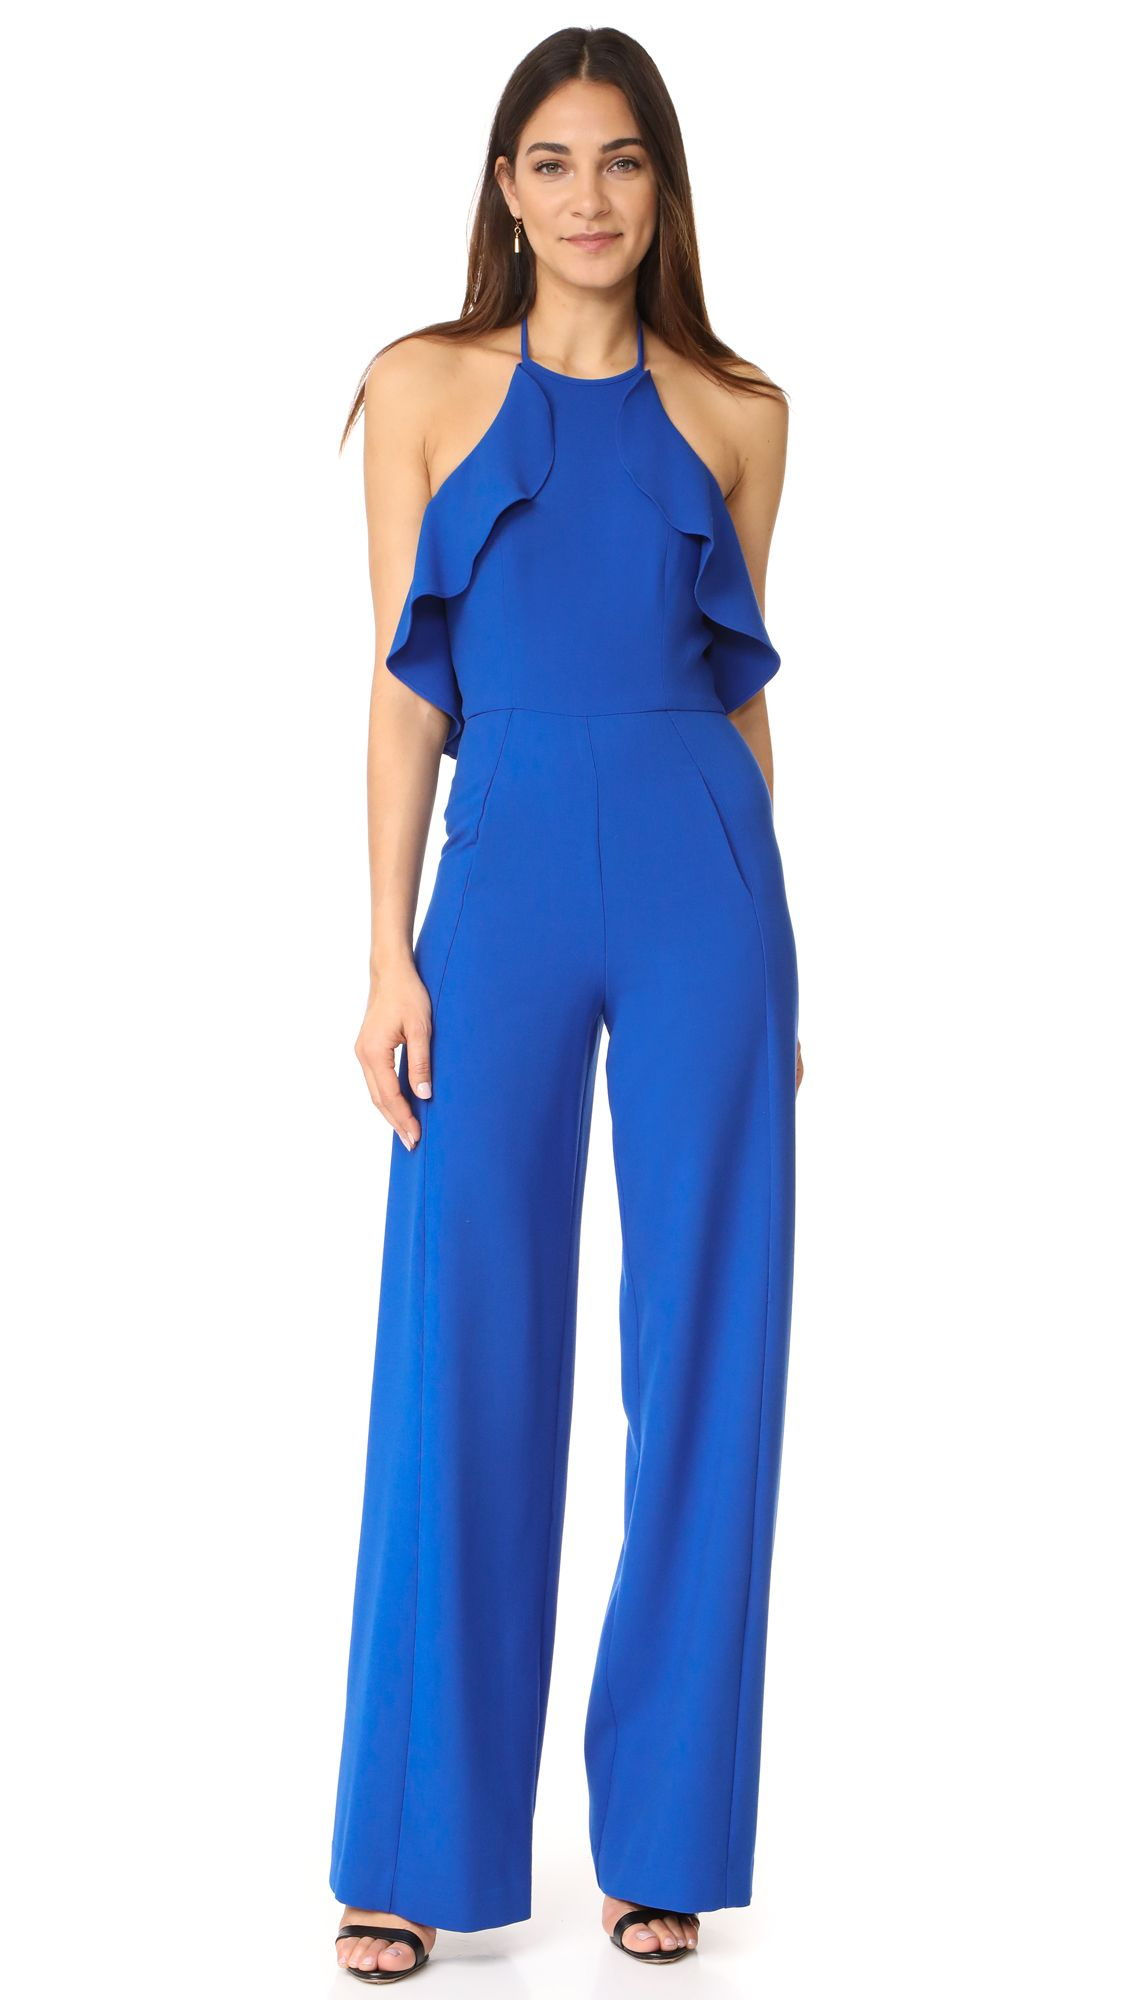 741d574d4681 15 Jumpsuits You Can Absolutely Wear as a Wedding Guest